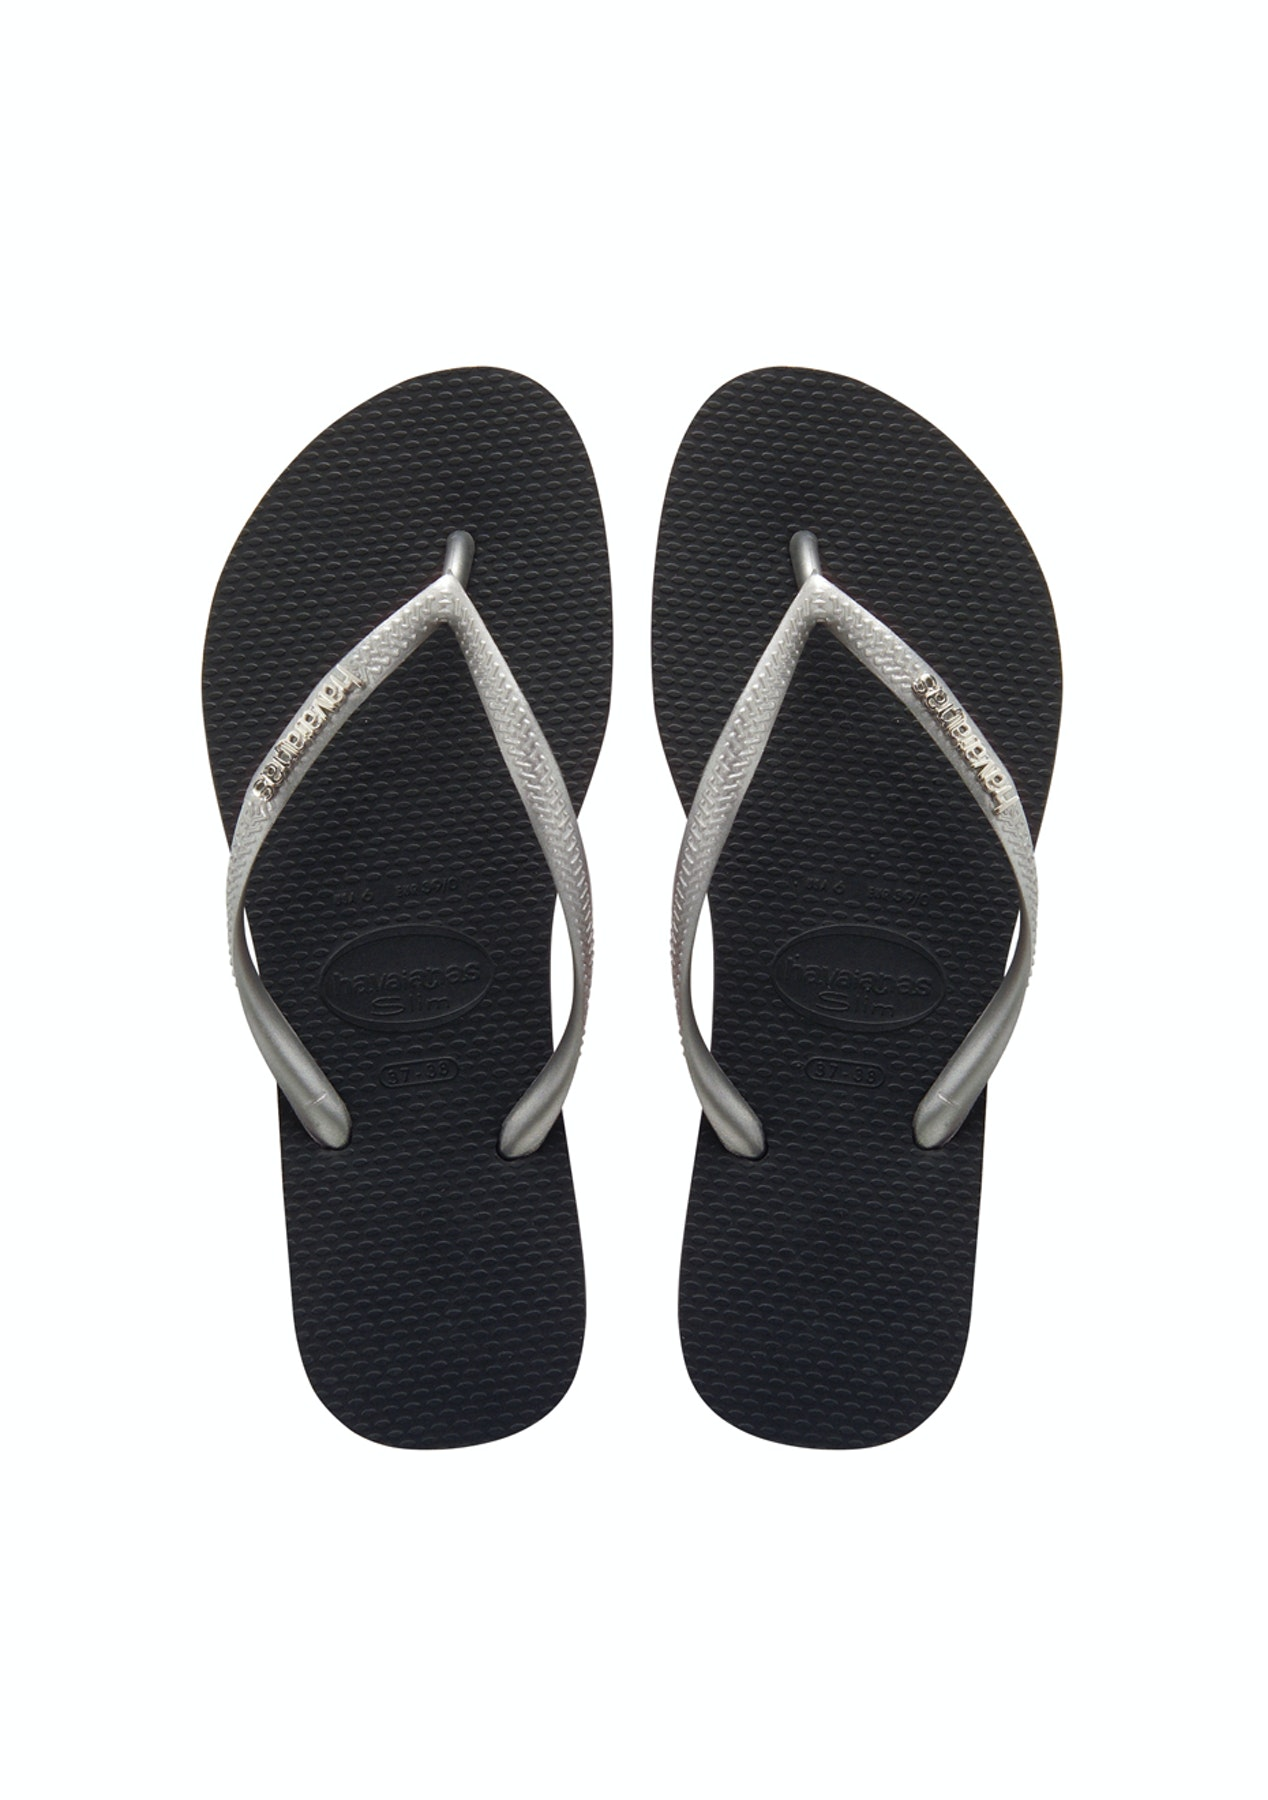 b5d647783430b Havaianas - Slim Metal Logo 3761 - Black   Silver   Silver - NEW Havaianas  - up to 60% off - Onceit